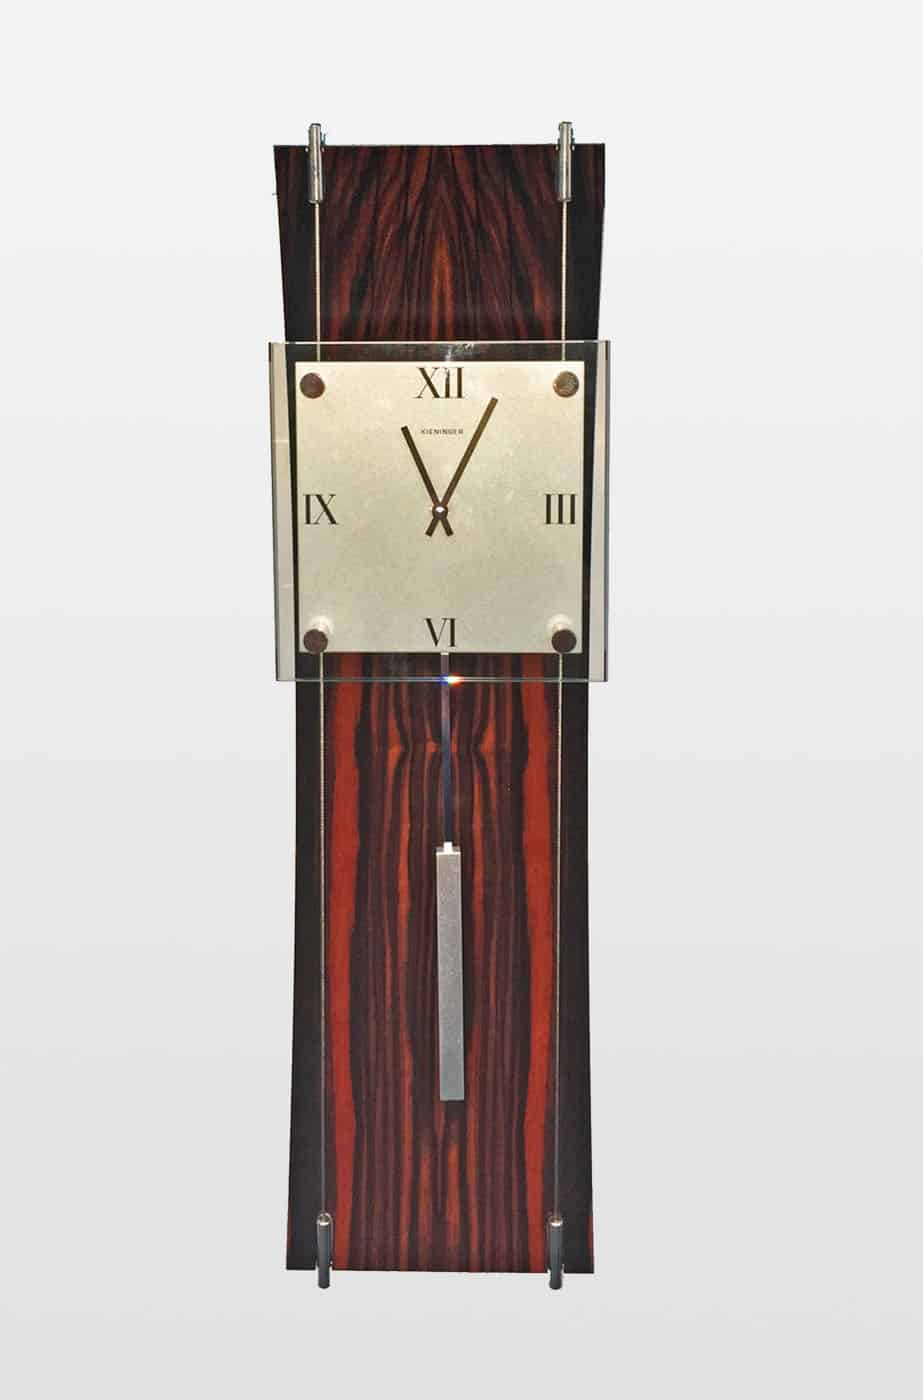 K Clock Contemporary Wall Clock in Olive Wood